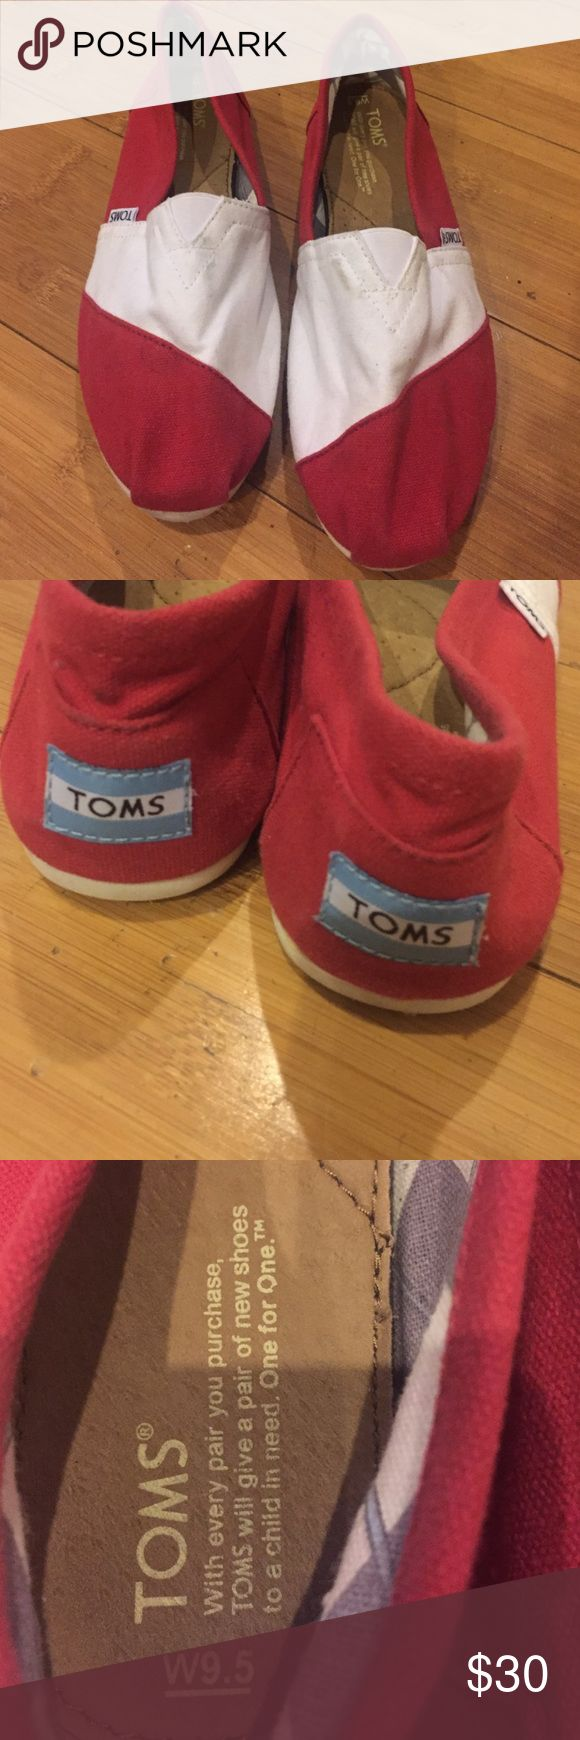 TOMS classic flats red with white stripe TOMS classic flats, red with white stripe. Worn less than 5 times TOMS Shoes Flats & Loafers